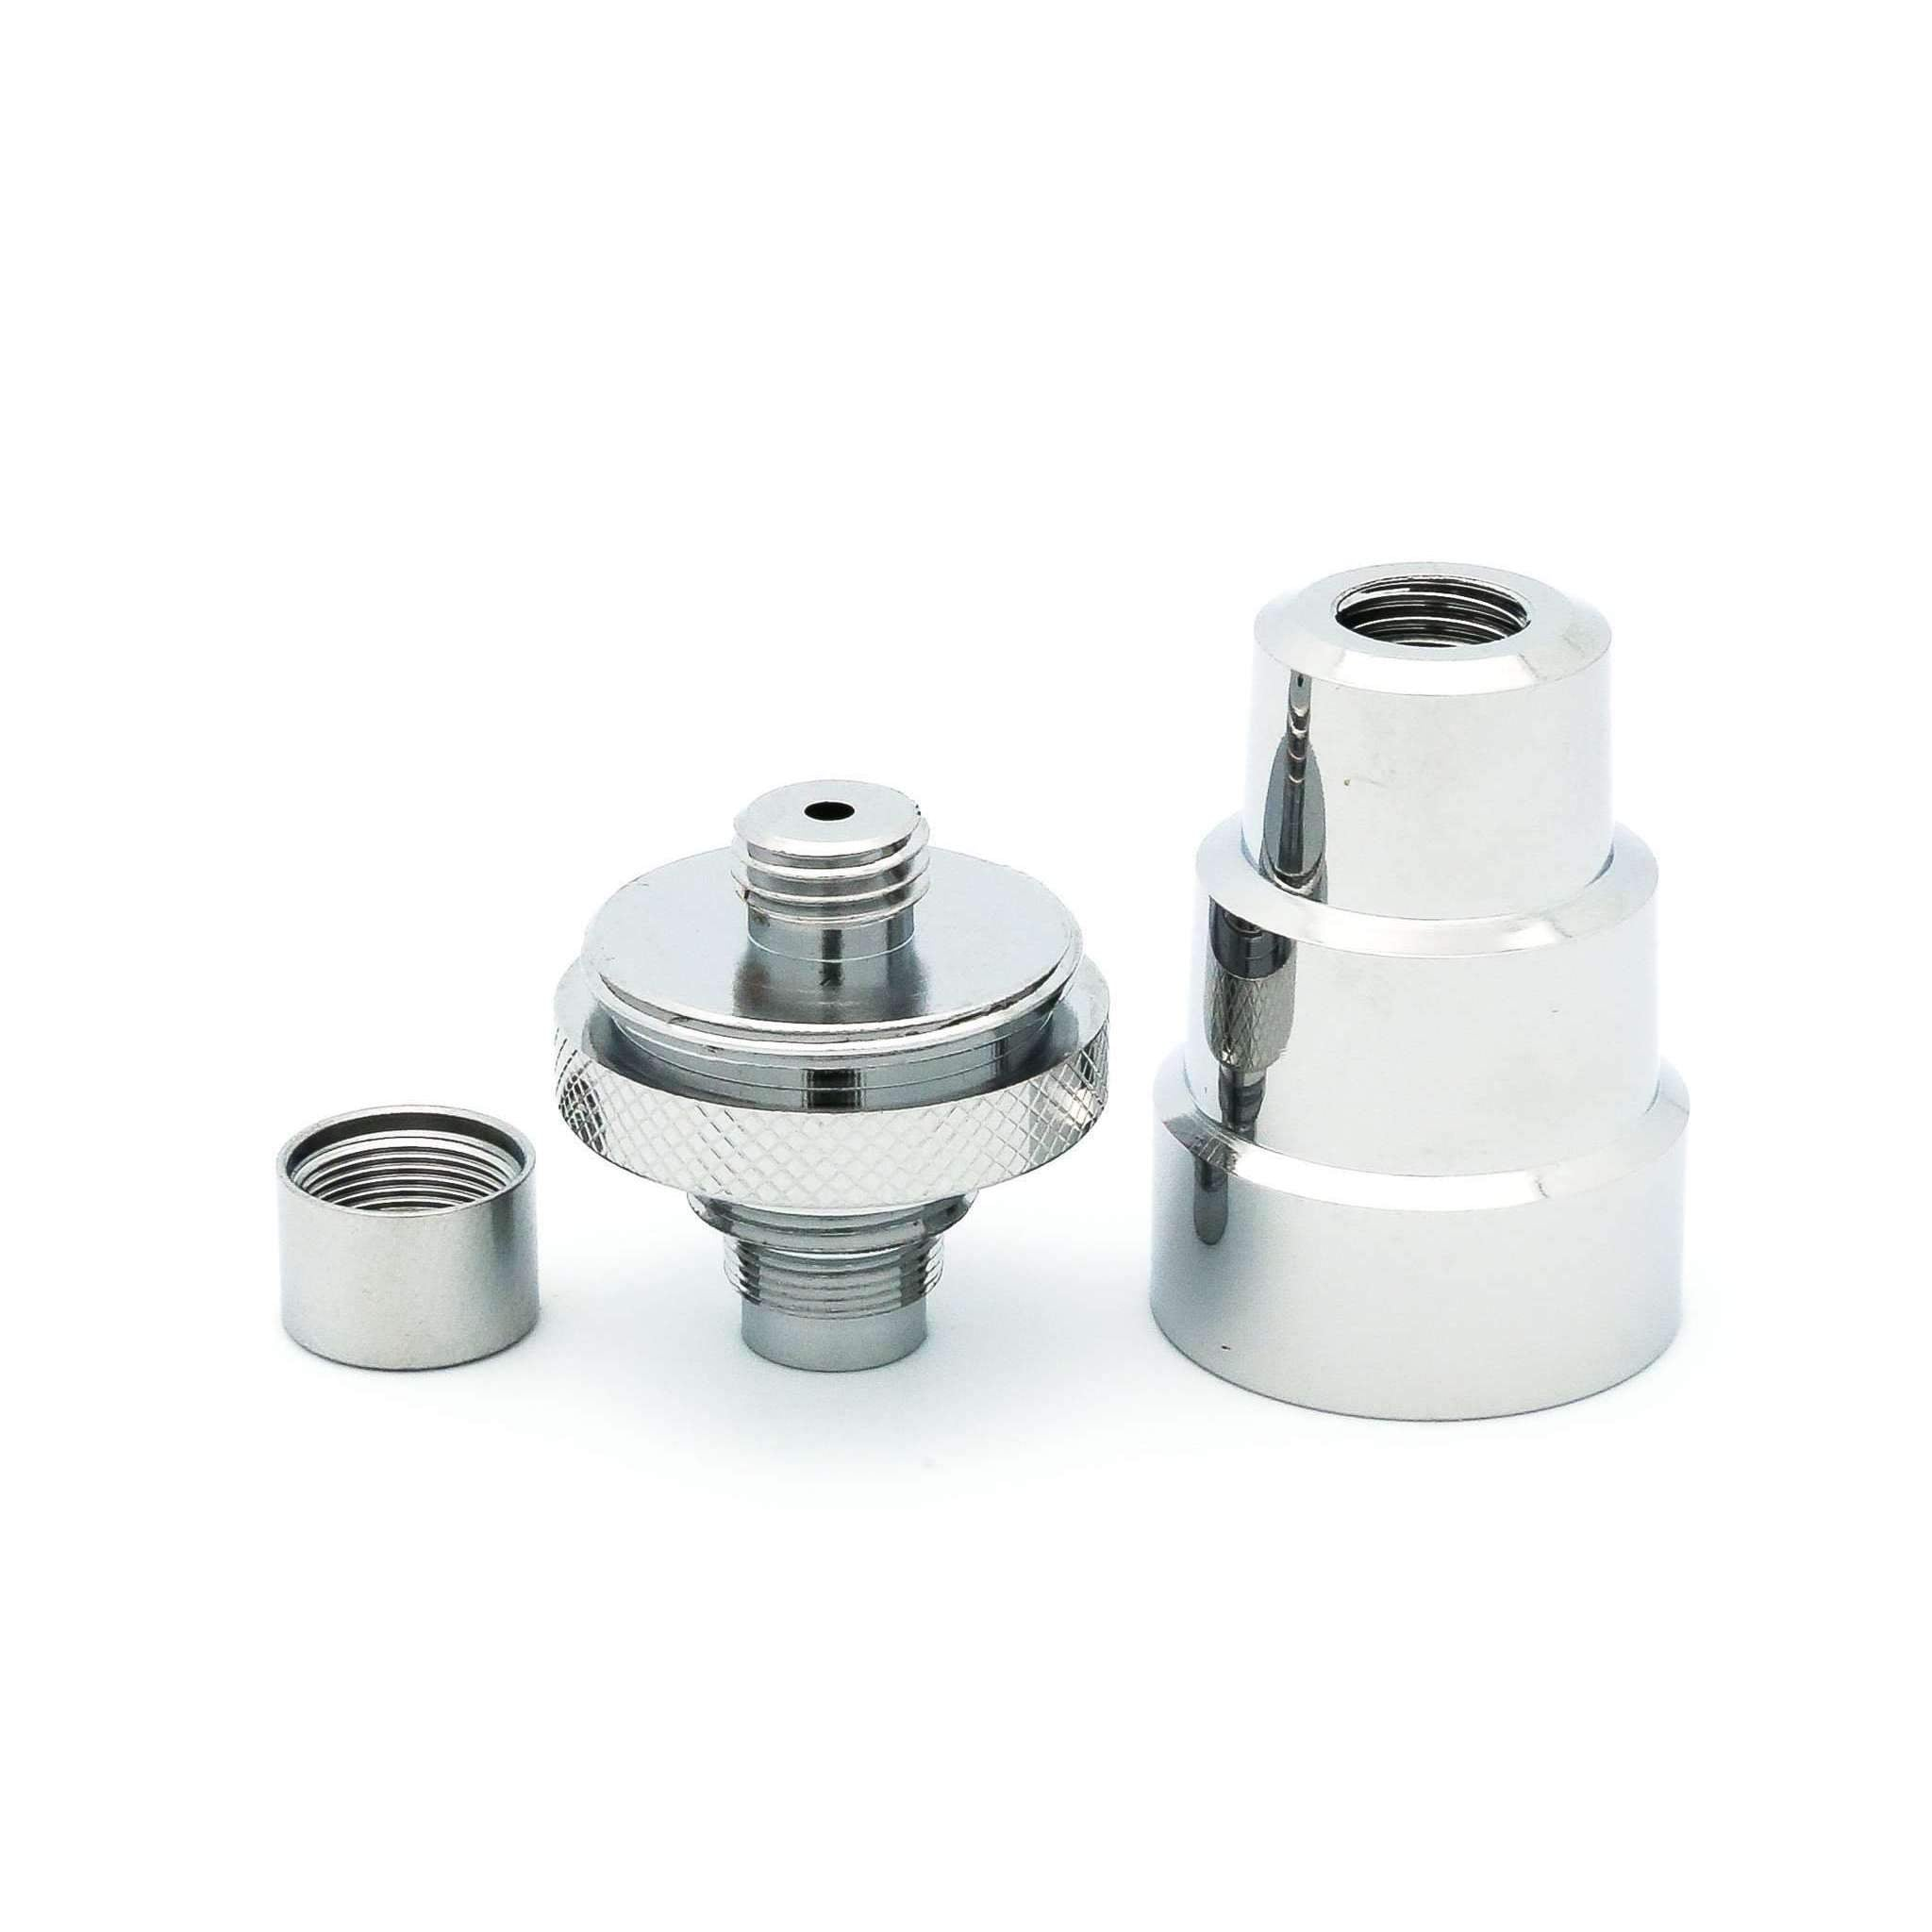 Universal Water Pipe Adapter For FlowerMate V5.0s/Pro (Male: 14mm & 18mm, Female: 10mm, 14mm & 18/19mm)